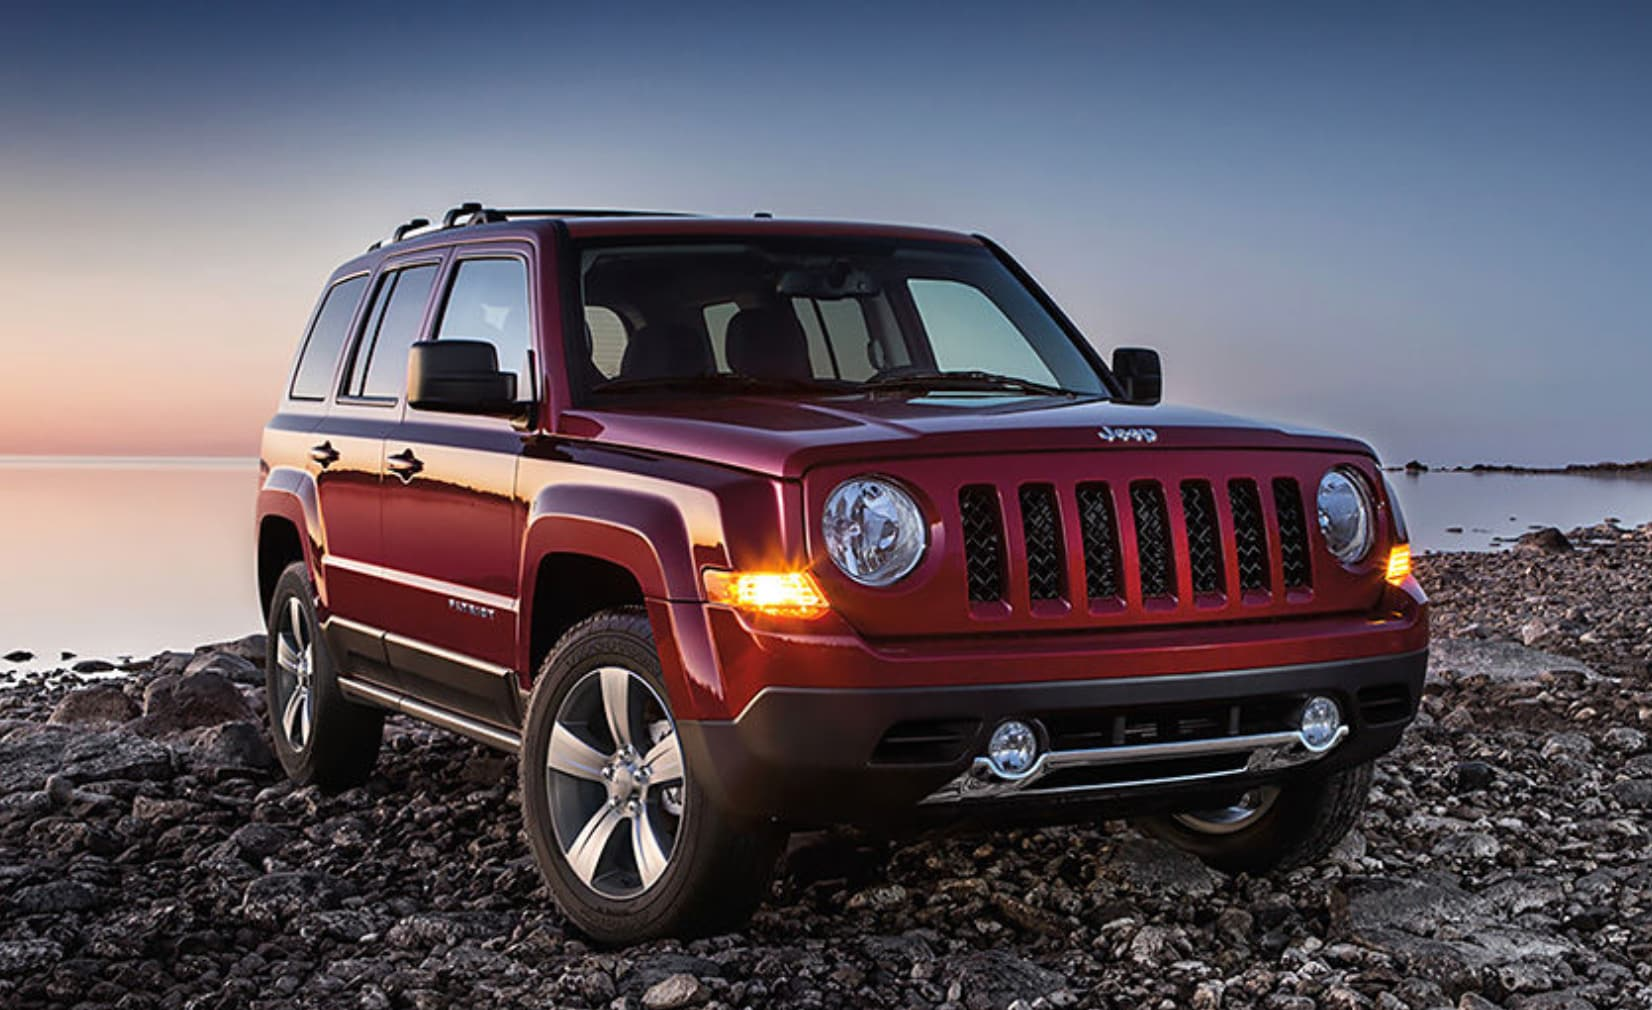 More than aggressively styled, the Jeep Patriot ...